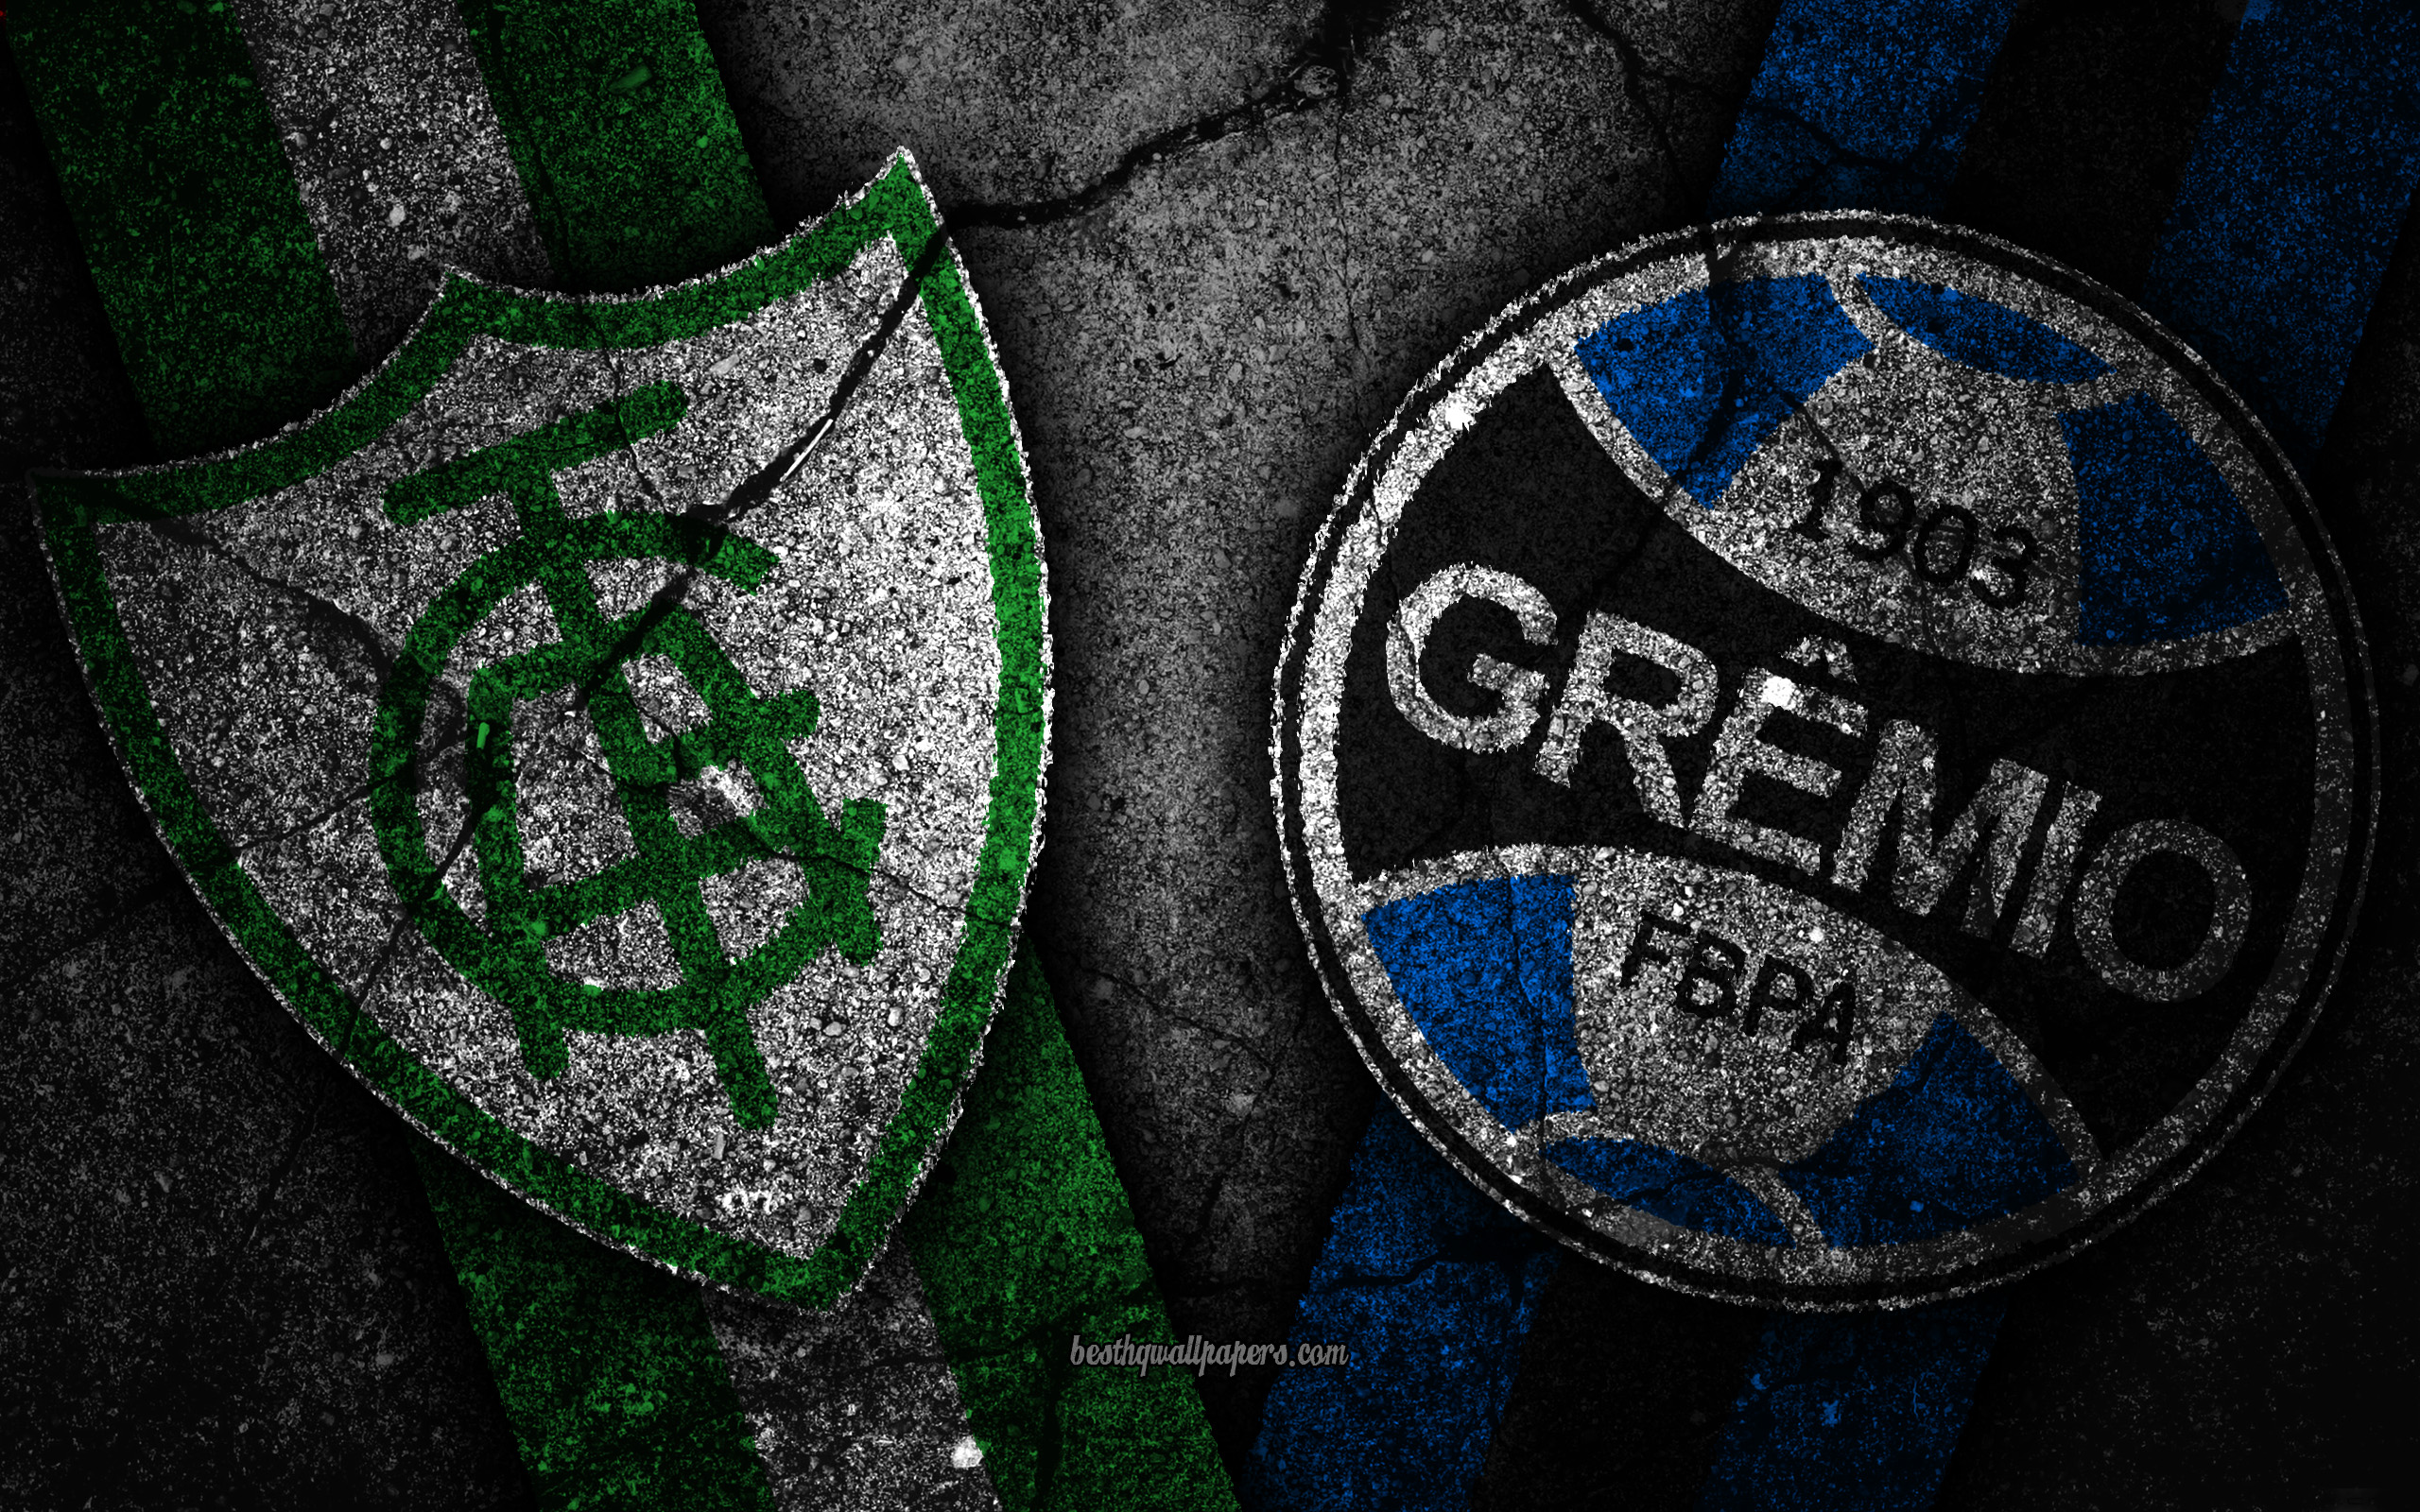 Download wallpapers America MG vs Gremio Round 30 Serie A 2560x1600